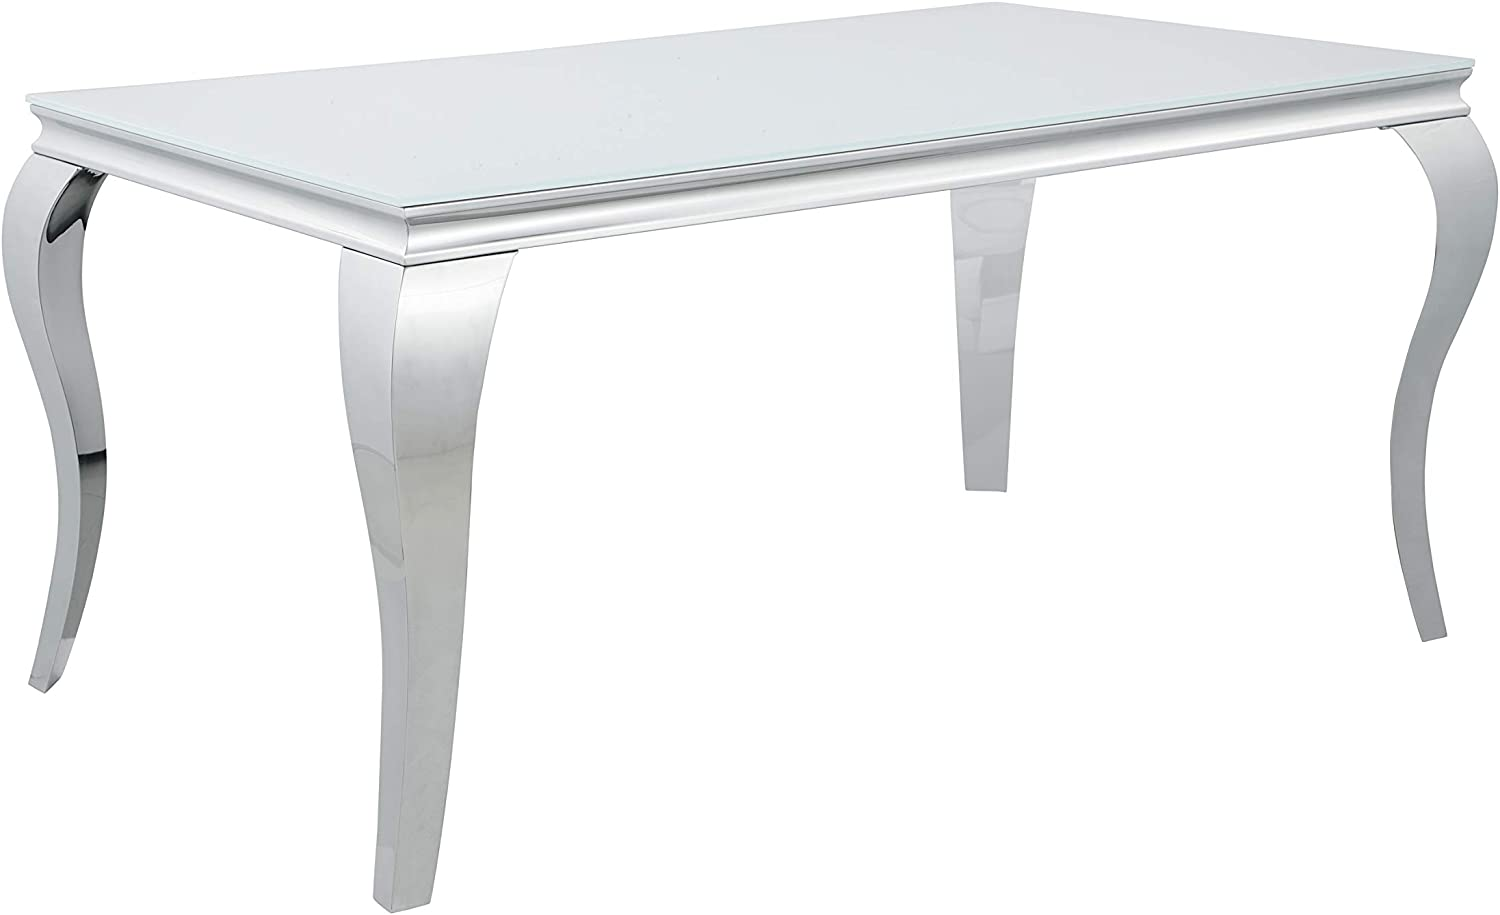 Coaster Home Furnishings Carone Glass Top White and Chrome Dining Table